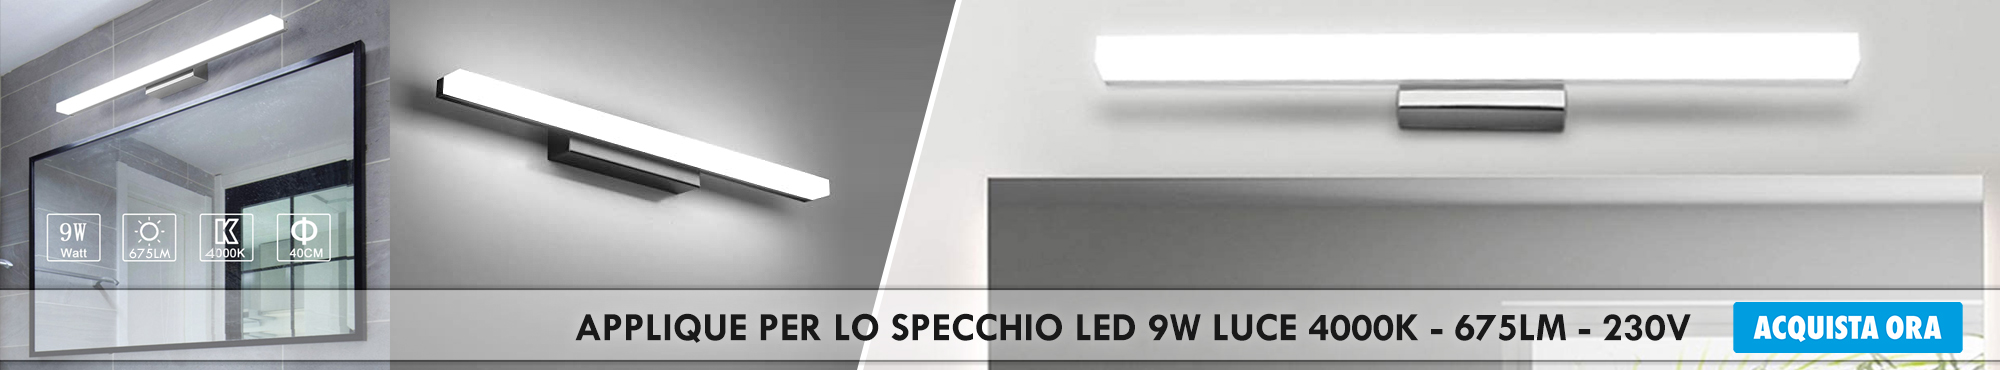 APPLIQUE-SPECCHIO-LED